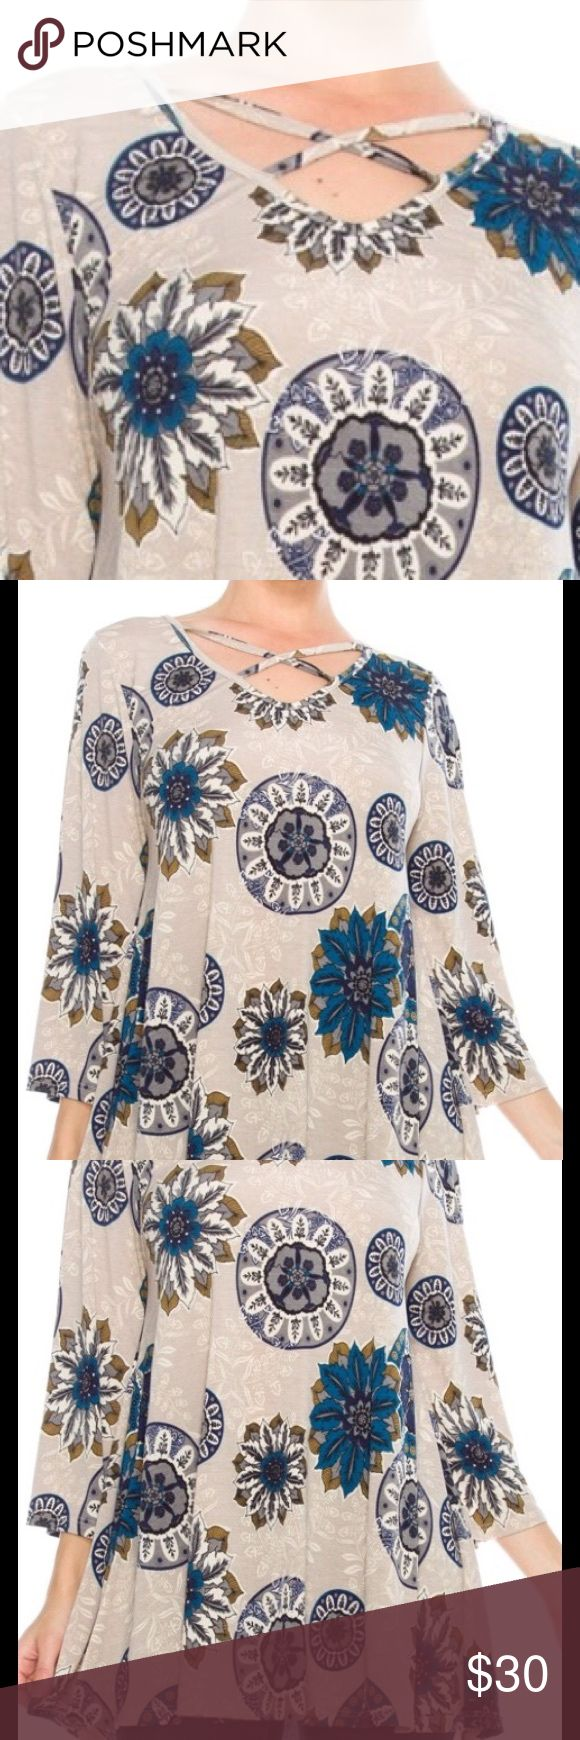 Brand New, Floral Tunic Brand New!!! Stone and teal colored floral top with cross front detail.  Looks great with navy or charcoal leggings. Tops